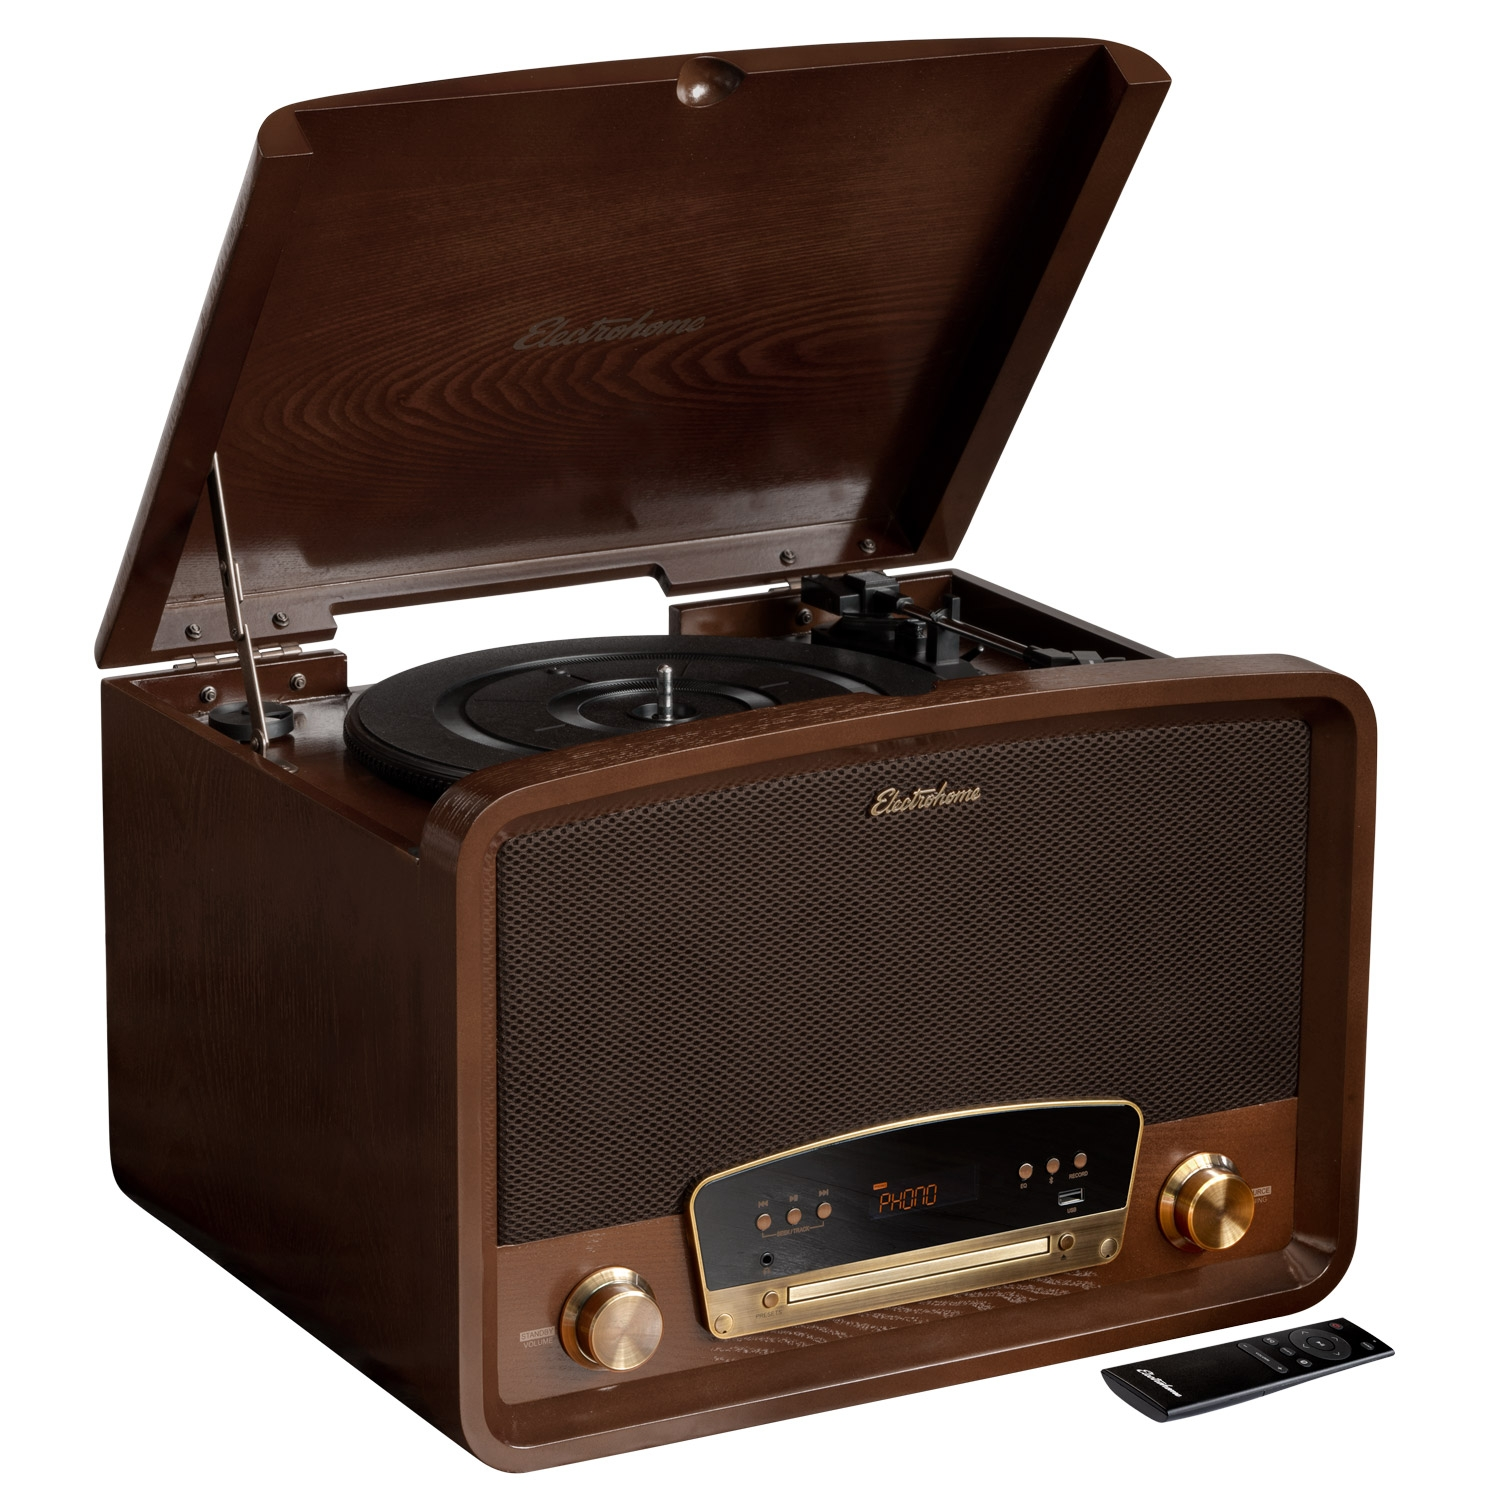 Kingston 7-in-1 Vinyl Record Player